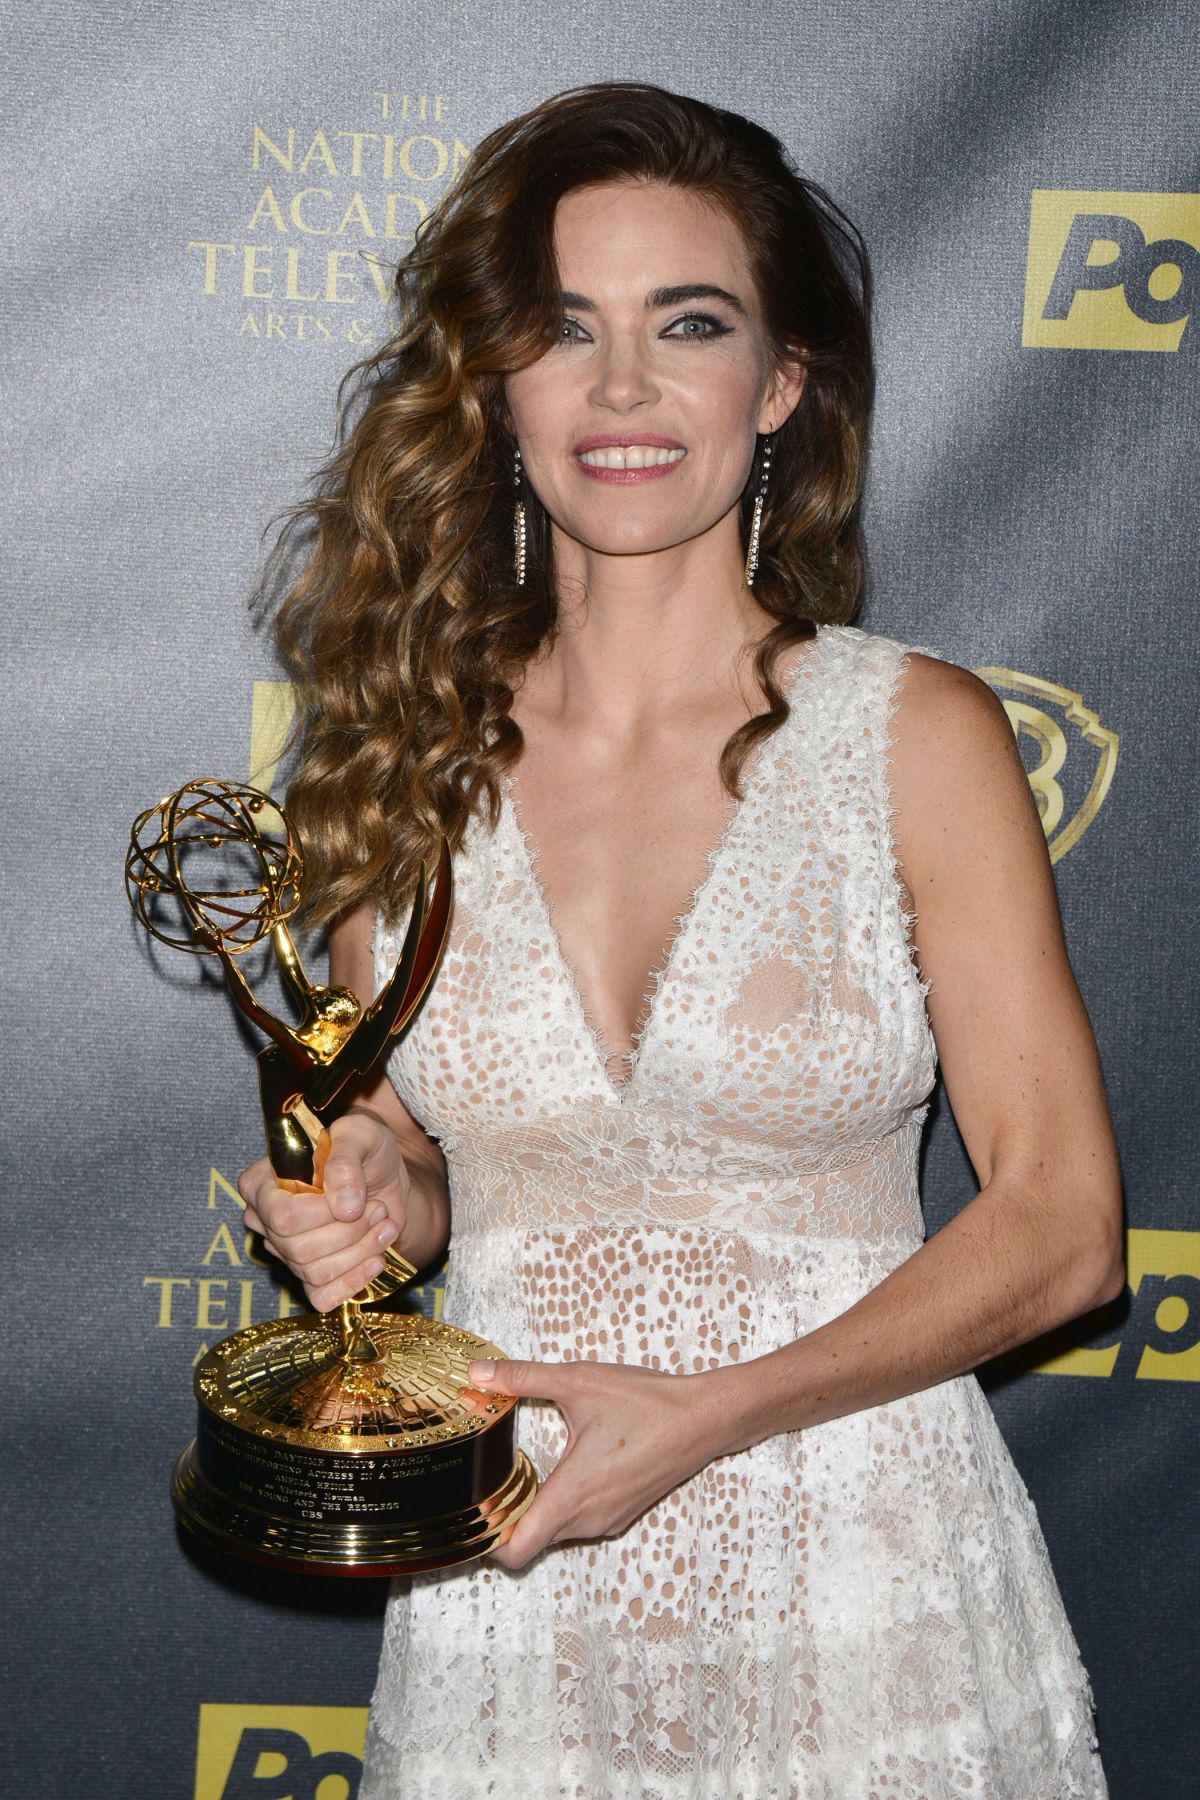 AMELIA HEINLE at 2015 Daytime Emmy Awards in Burbank